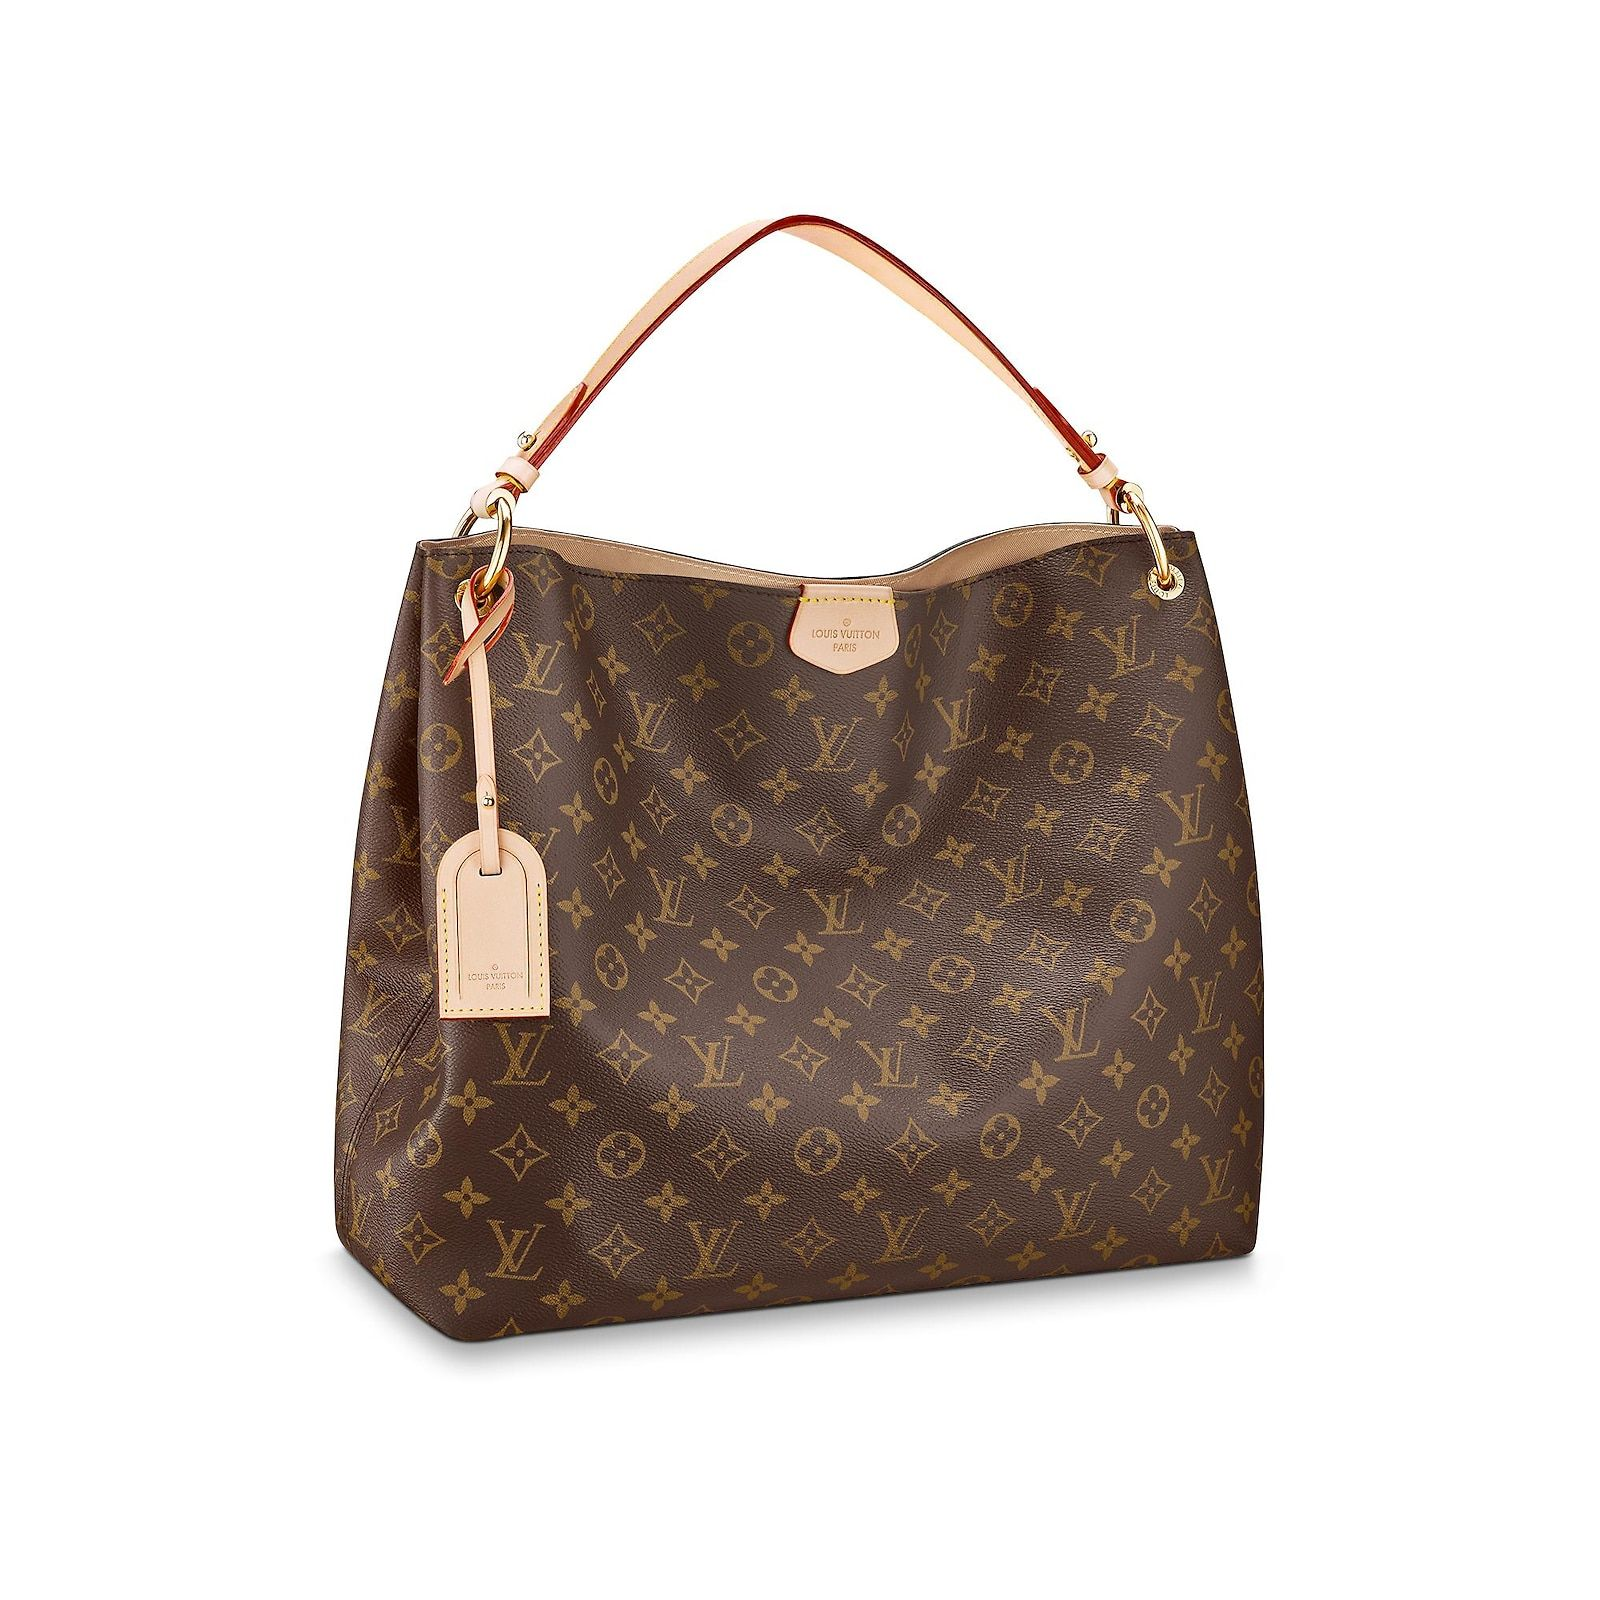 Products By Louis Vuitton Graceful Mm Louis Vuitton Louis Vuitton Monogram Handbags Vuitton